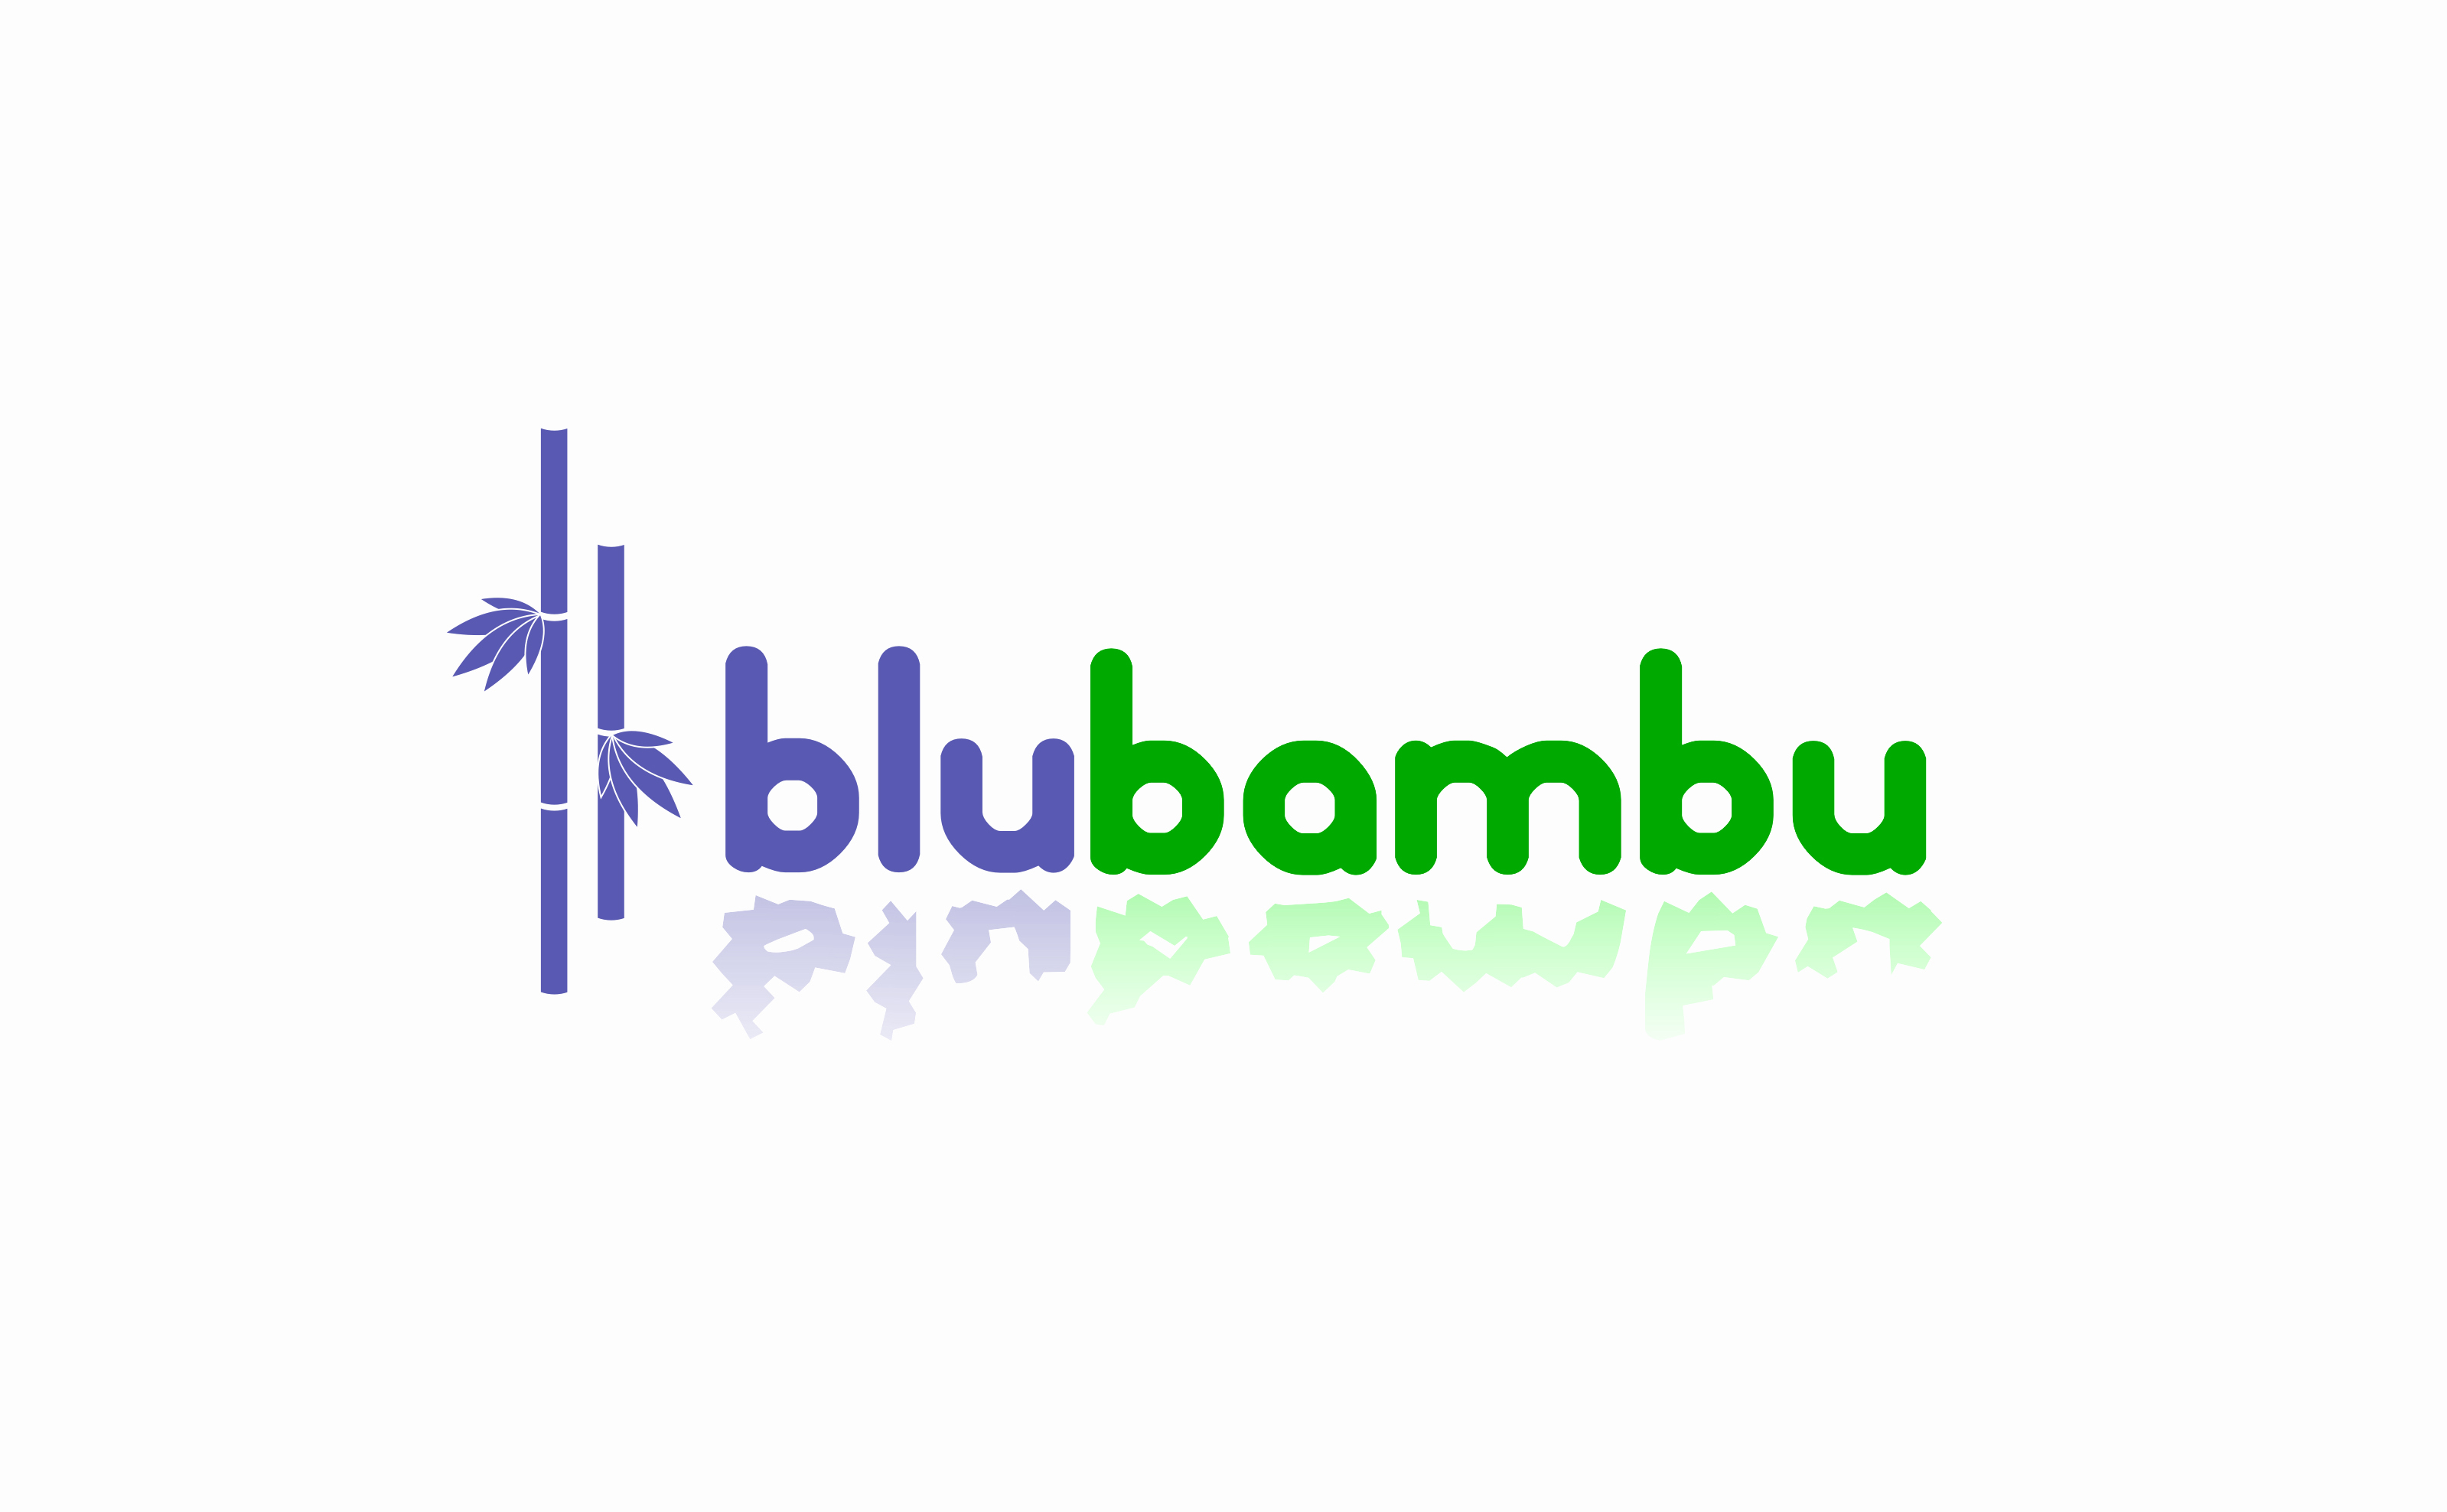 Logo Design by Kostas Vasiloglou - Entry No. 75 in the Logo Design Contest New Logo Design for blubambu.